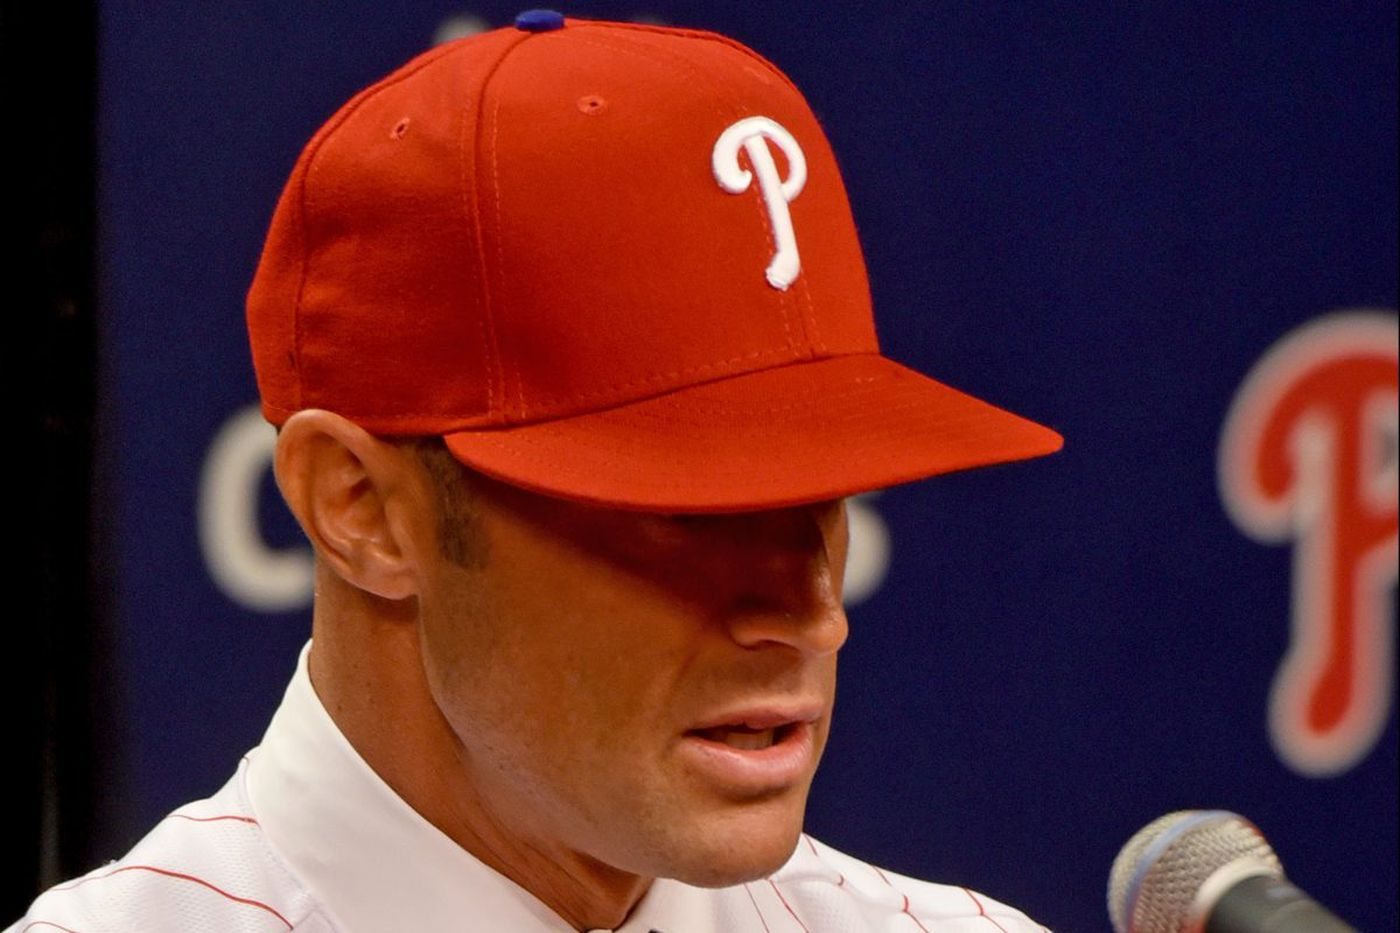 New Phillies manager Gabe Kapler's next task is hiring a coaching staff